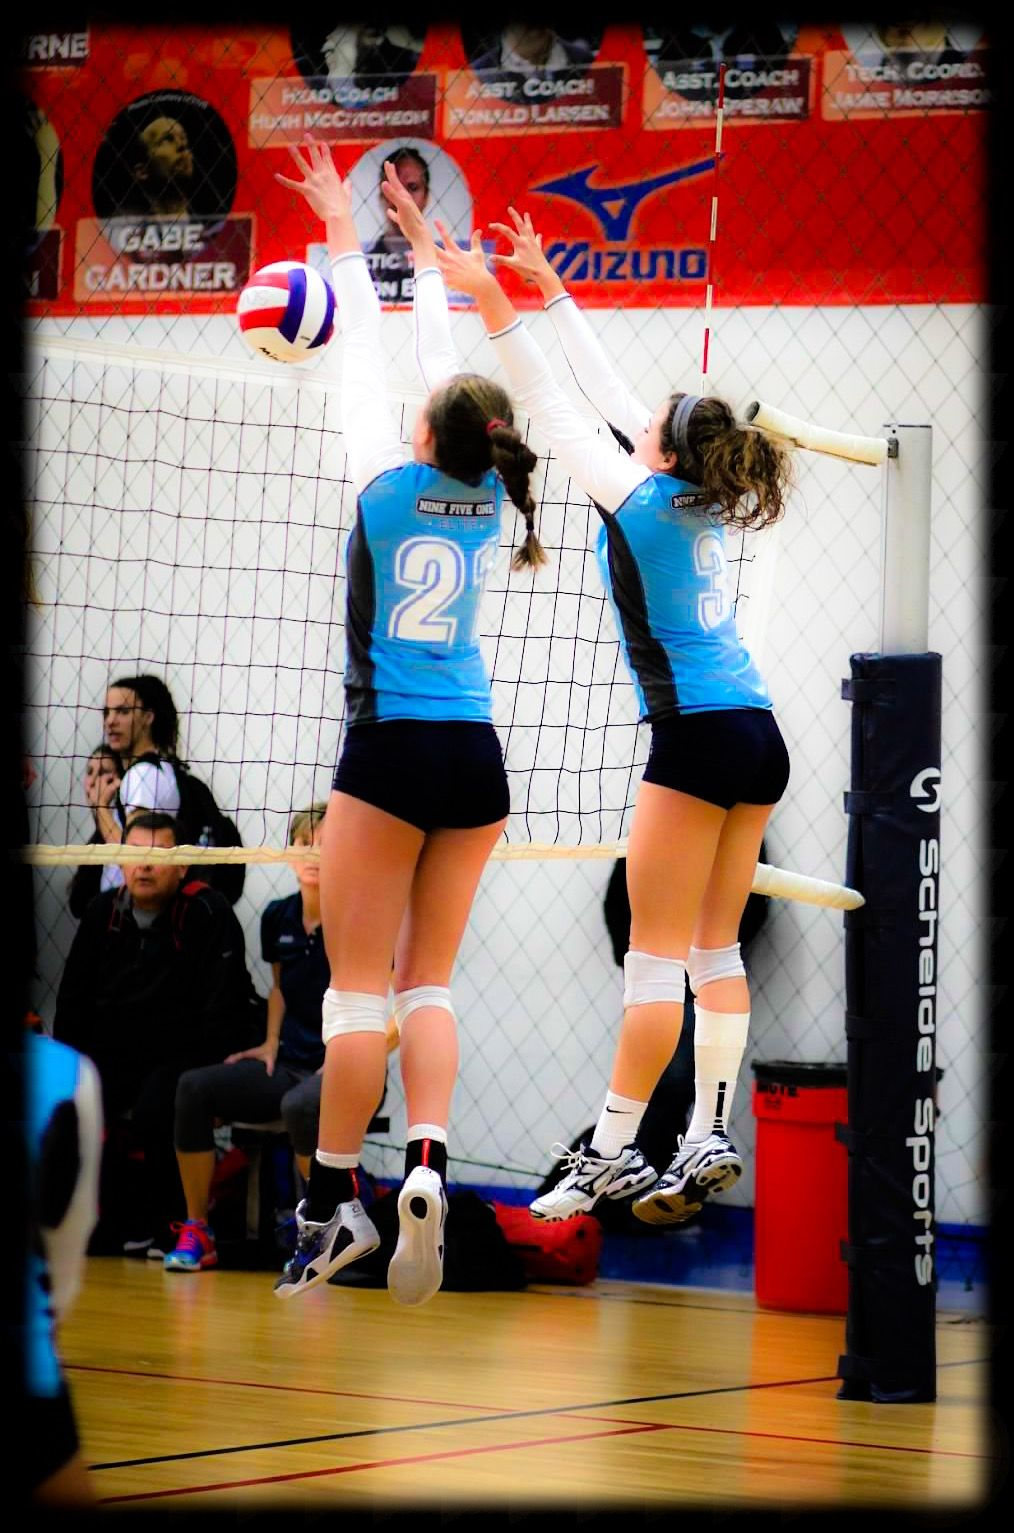 Pin By Wild Pepper Sports On Wild Pepper Clubs Sport Volleyball Volleyball Clubs Volleyball